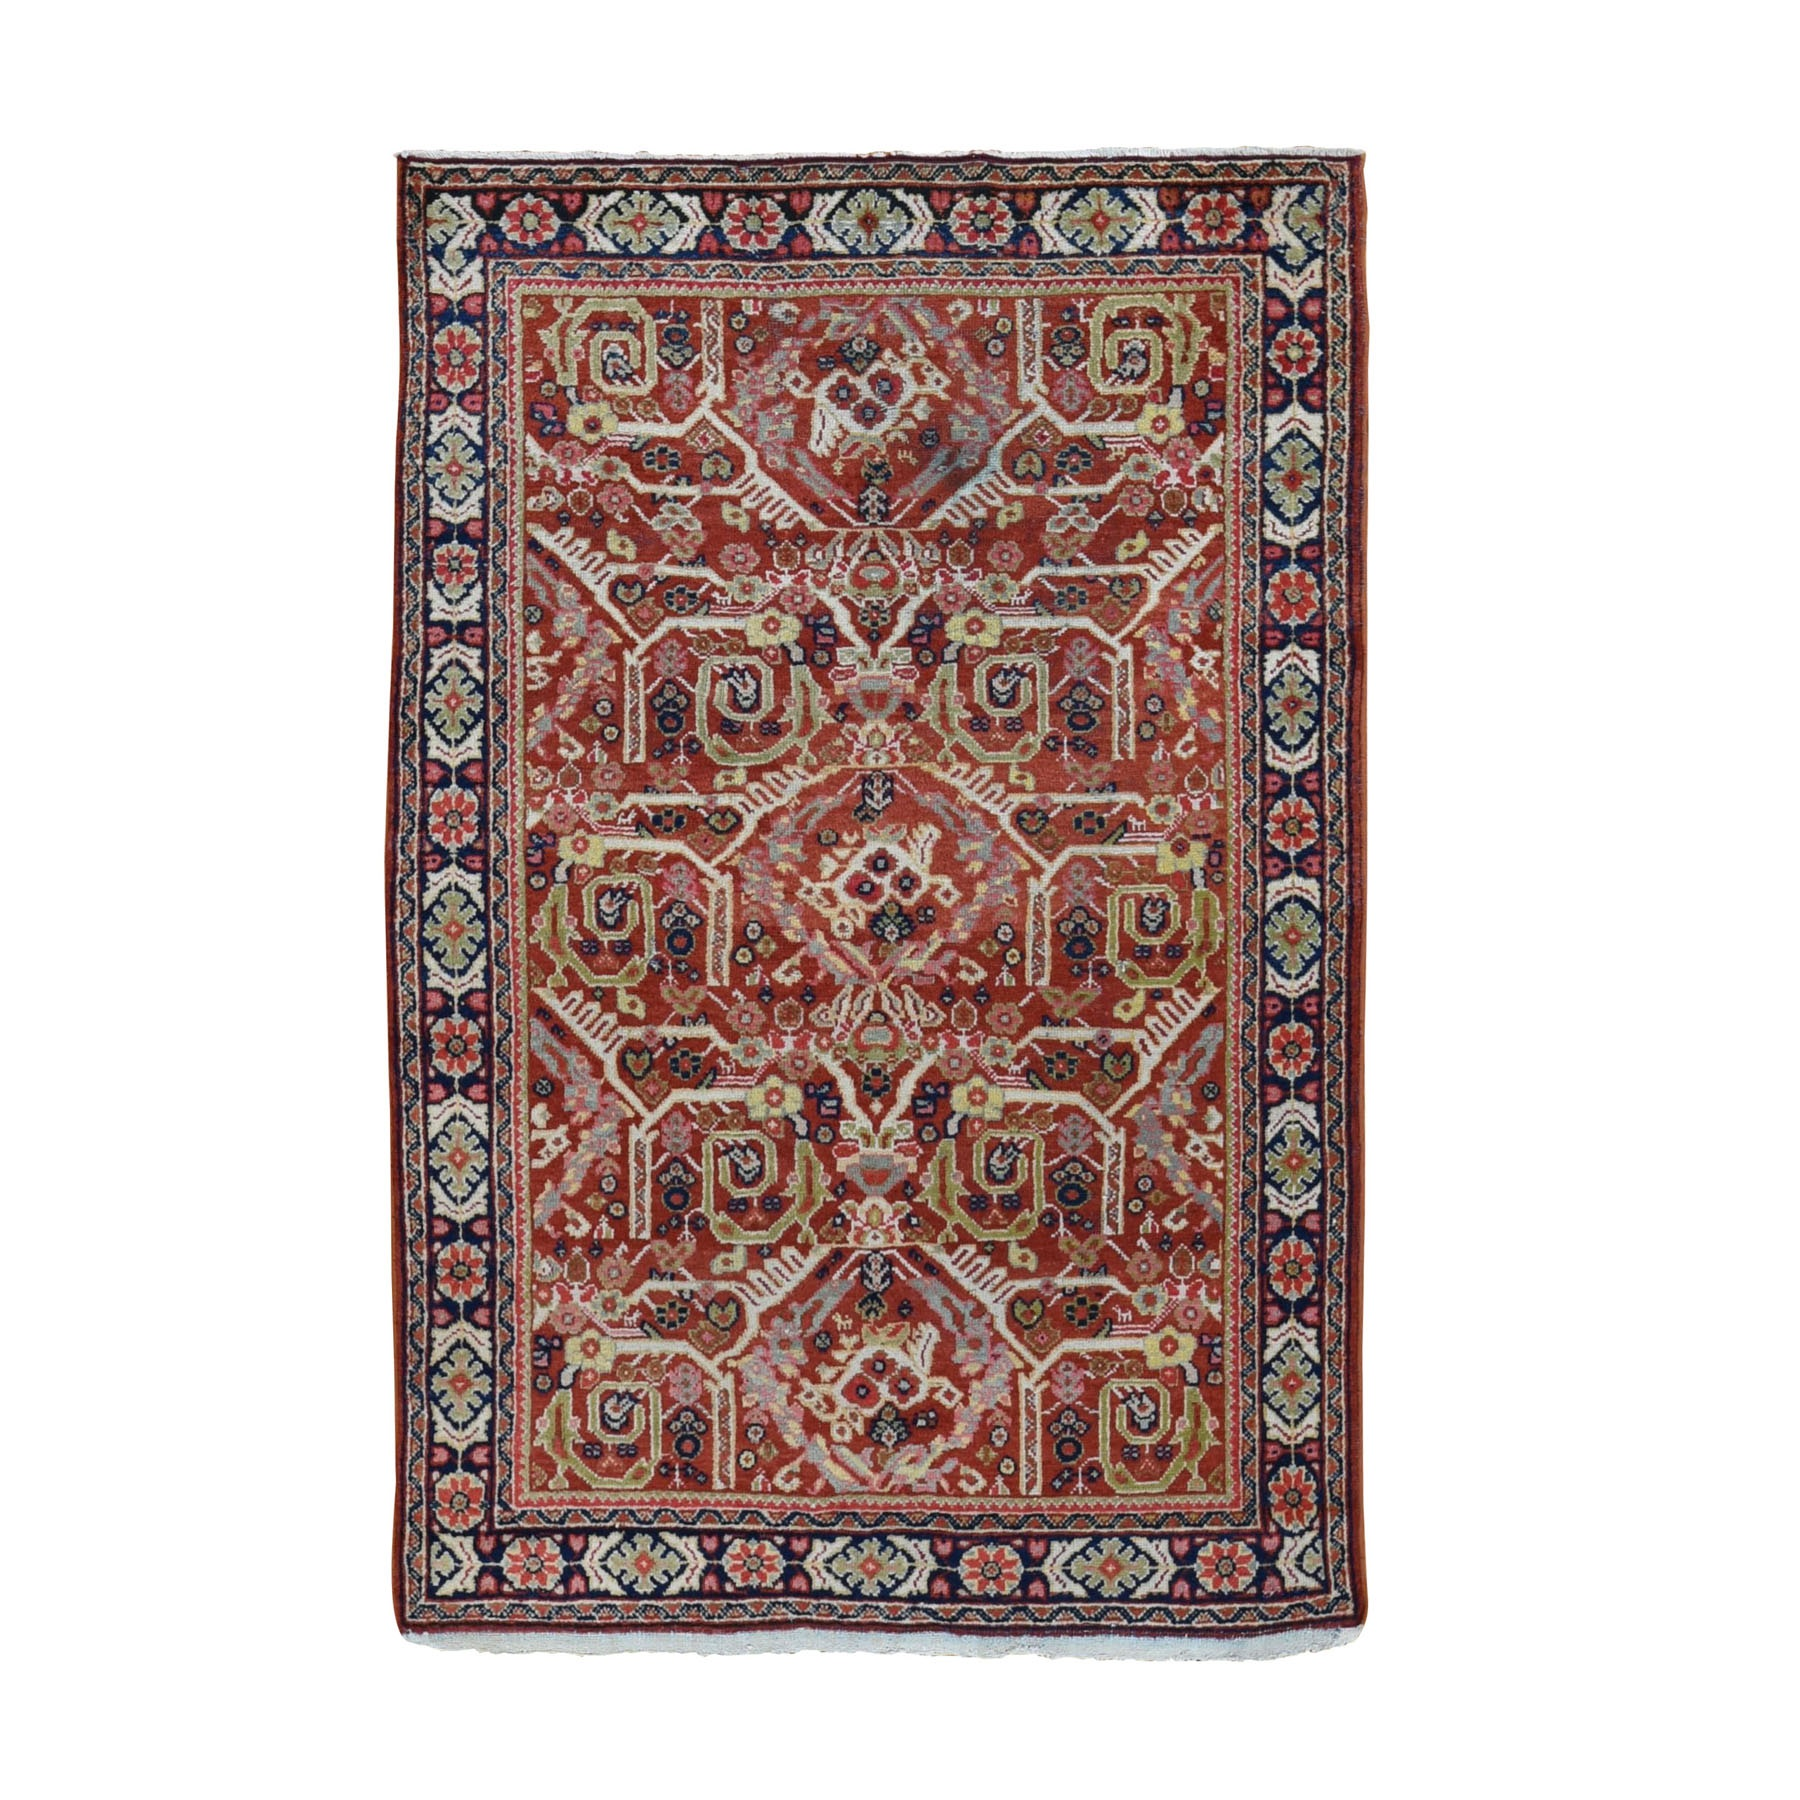 "4'1""x6'7"" Red Antique Persian Mahal Exc Condition Hand Woven Oriental Rug"